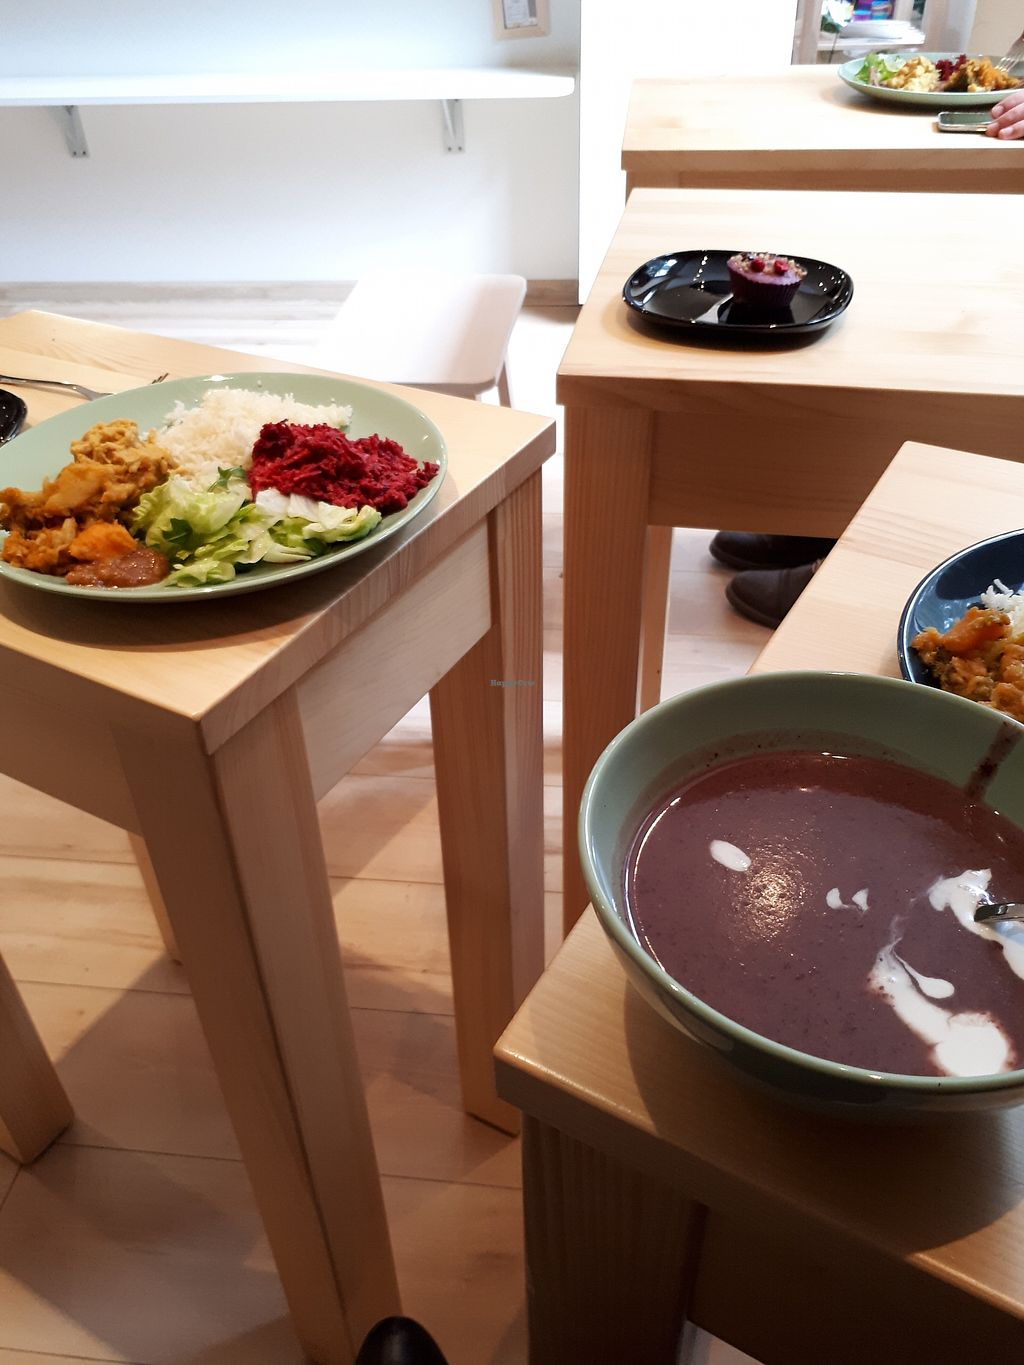 """Photo of VegFood  by <a href=""""/members/profile/TheLeisureCook"""">TheLeisureCook</a> <br/>small tables but cosy atmosphere <br/> February 25, 2018  - <a href='/contact/abuse/image/36157/363541'>Report</a>"""